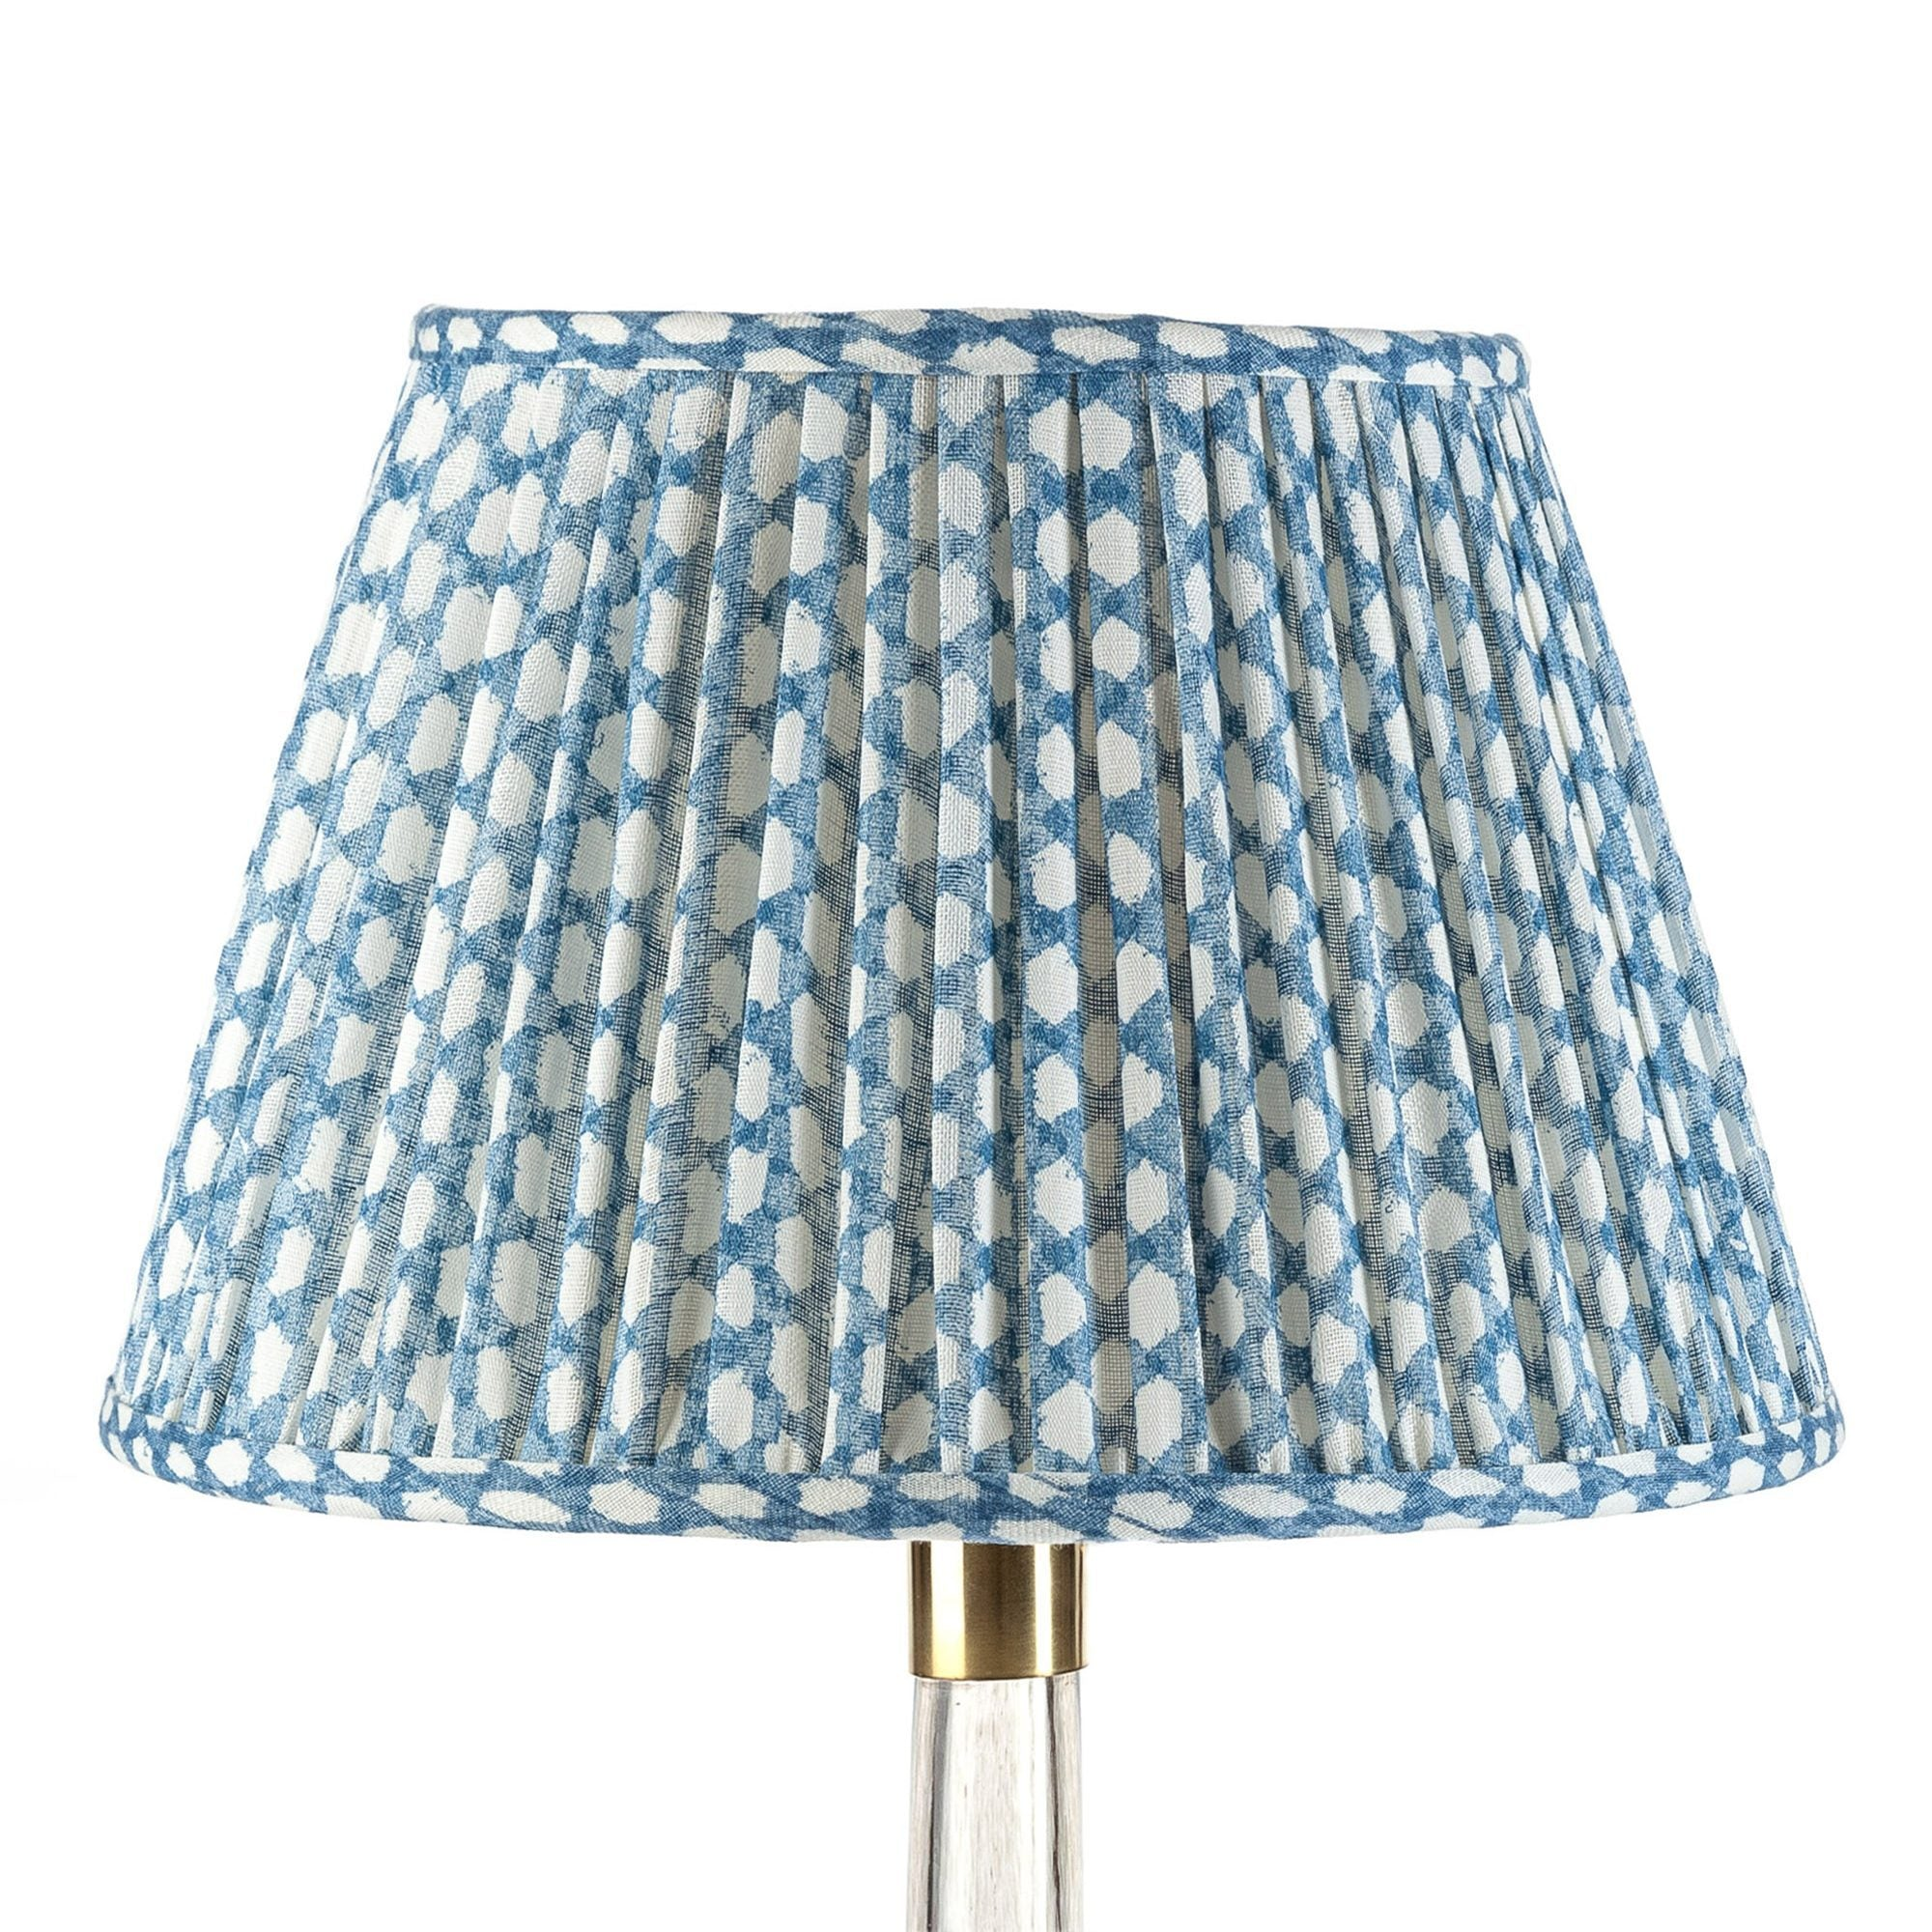 Fermoie Lampshade in Blue Wicker